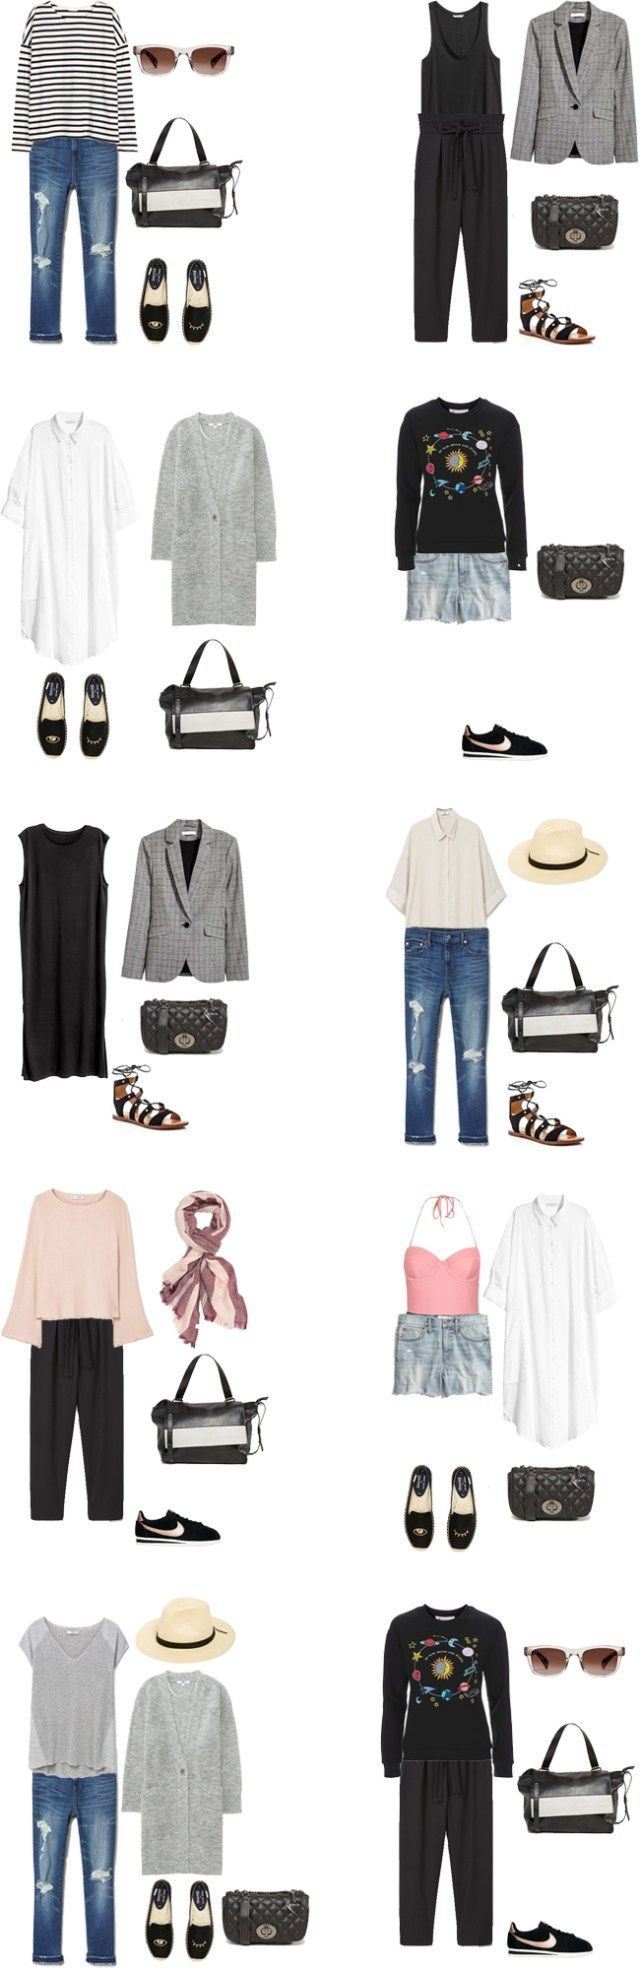 Packing List: 2 weeks in Lisbon, Portugal in Spring 2017. Outfit Options 2 - livelovesara